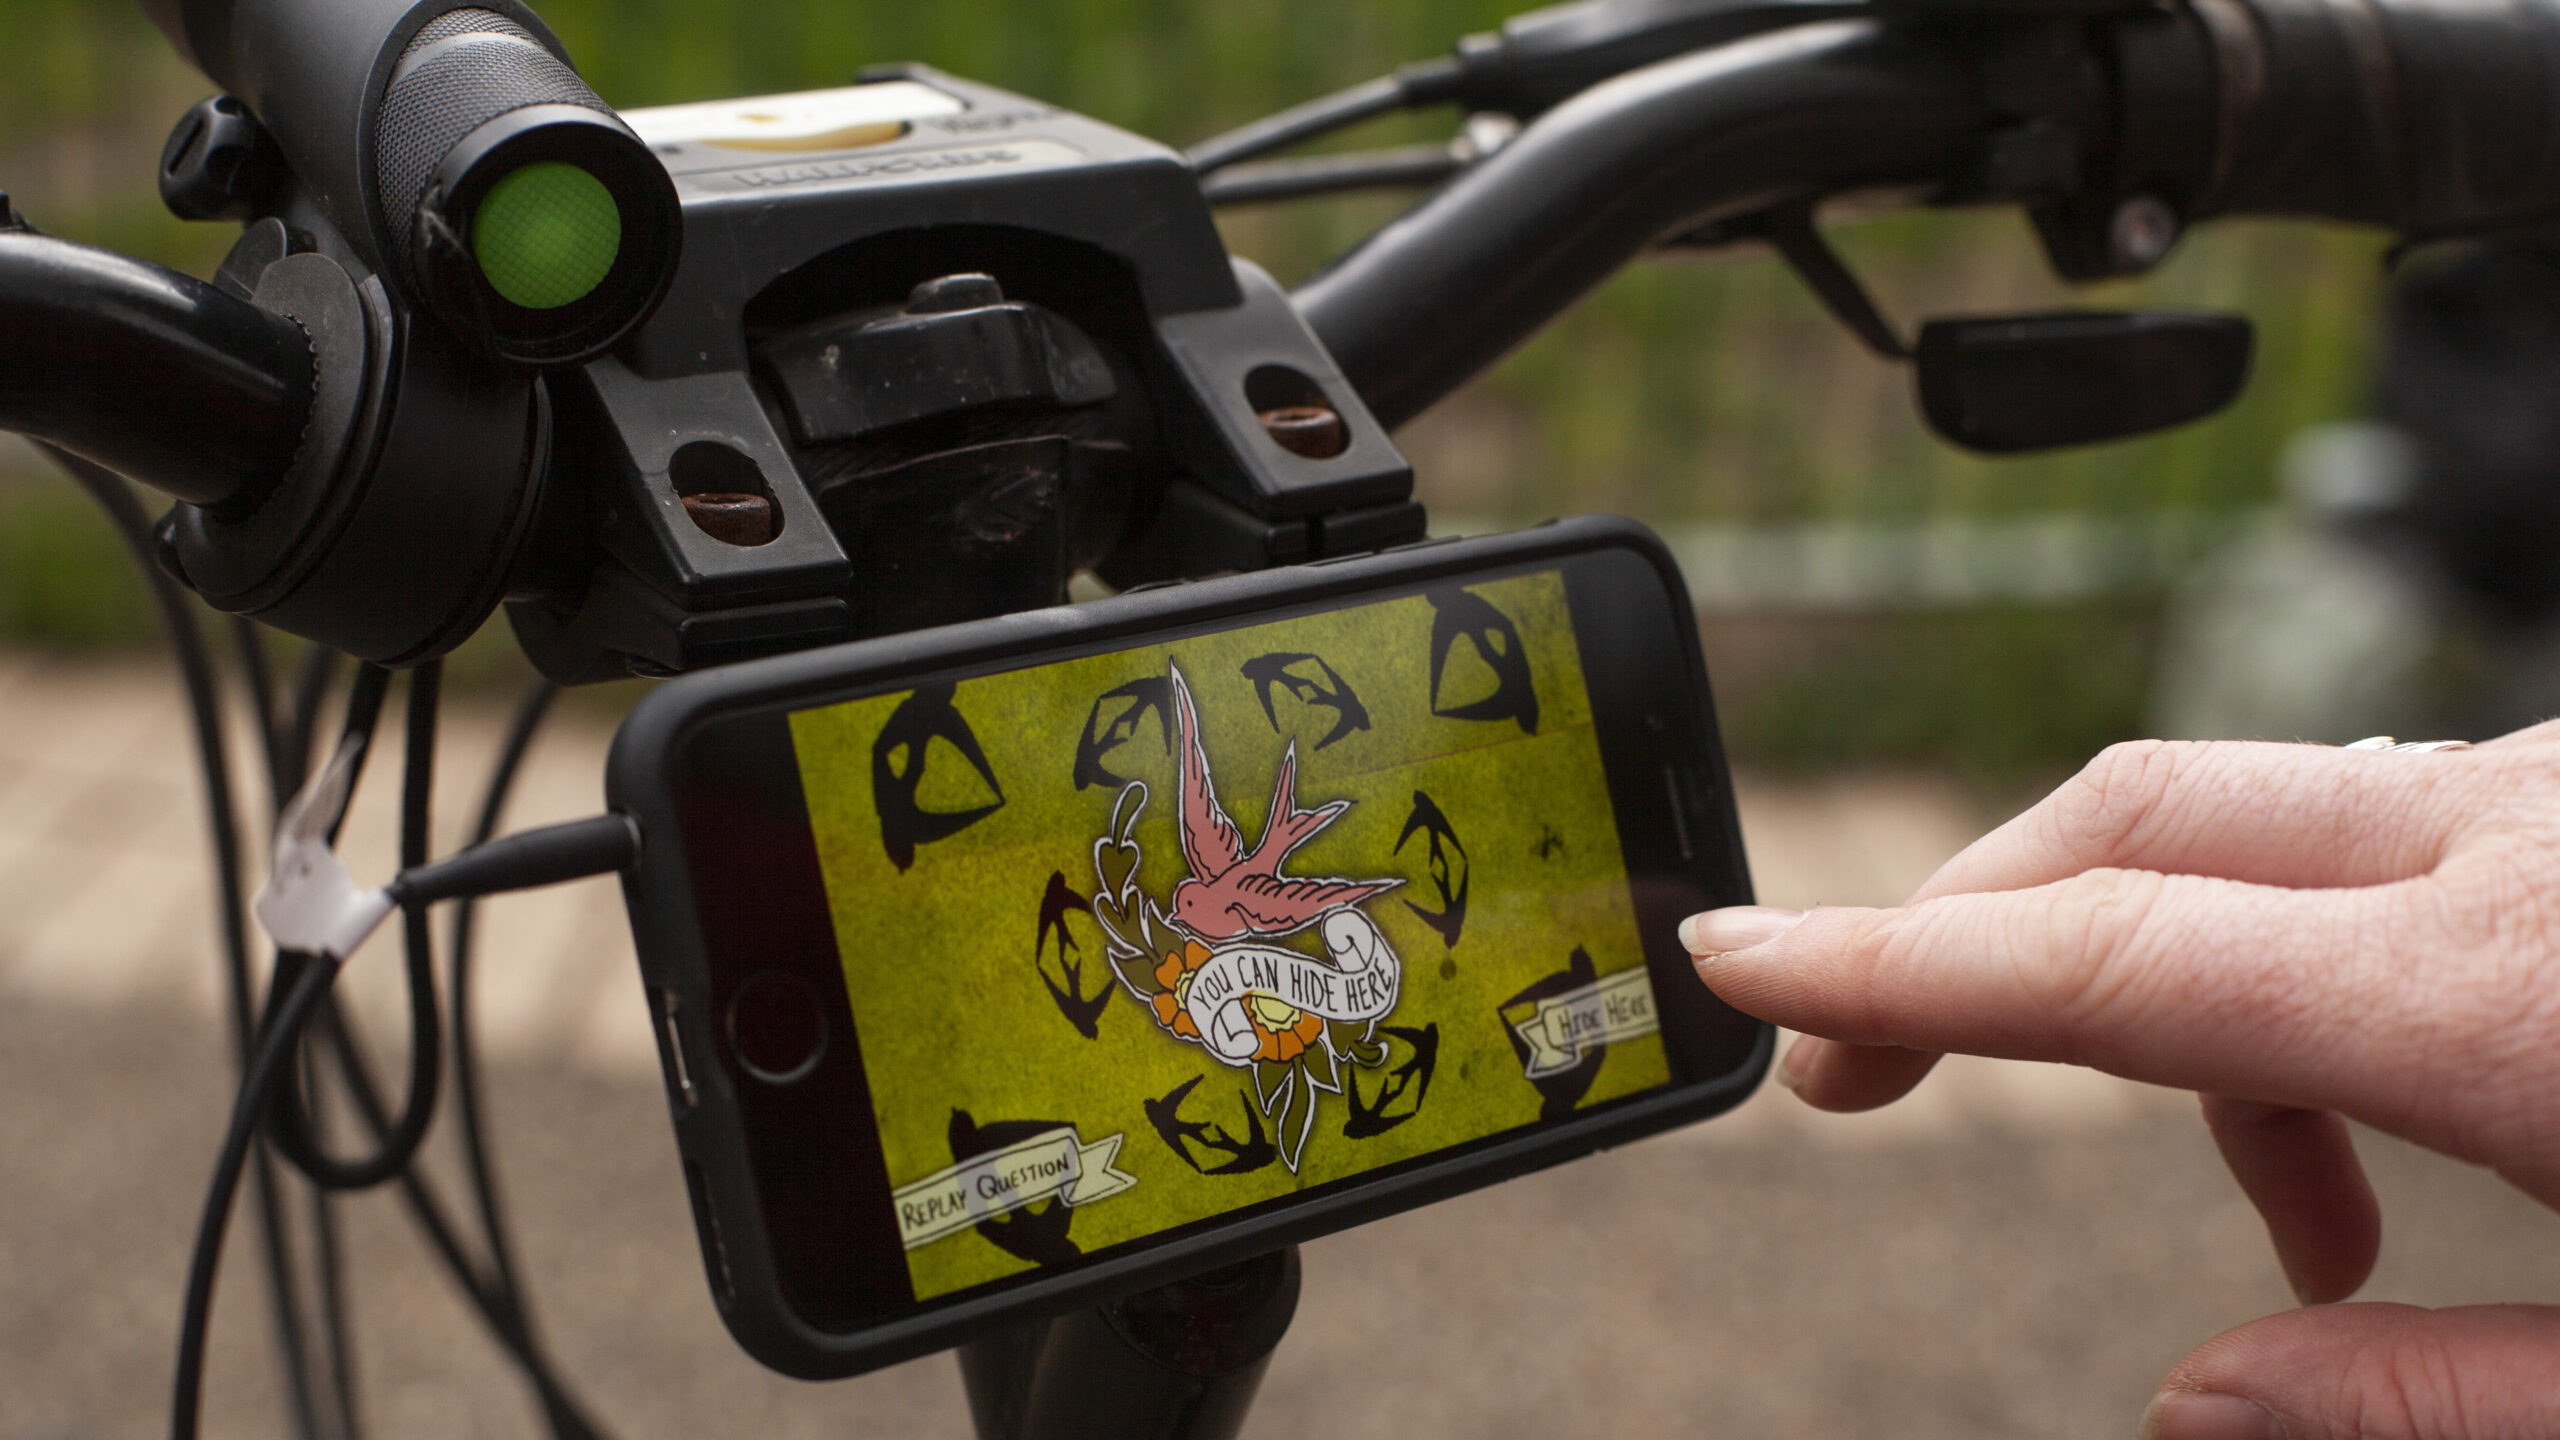 A phone mounted to an bike with a white person tapping the screen